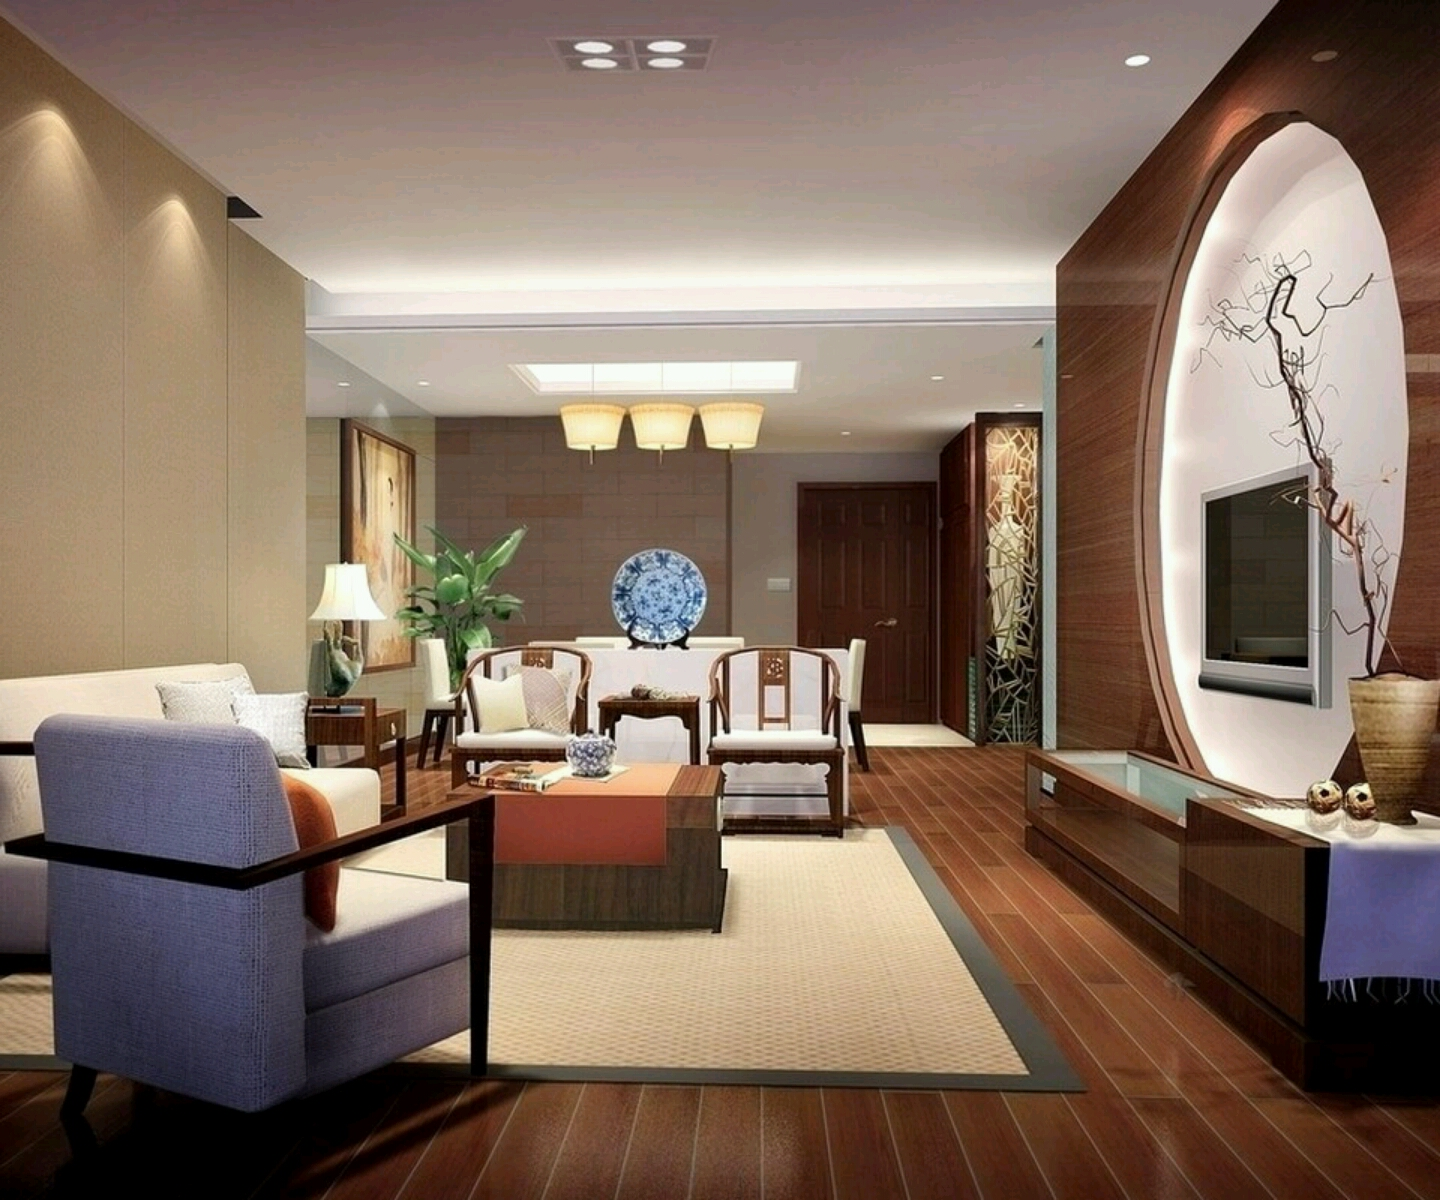 7 Apartment Decorating And Small Living Room Ideas: Luxury Homes Interior Decoration Living Room Designs Ideas